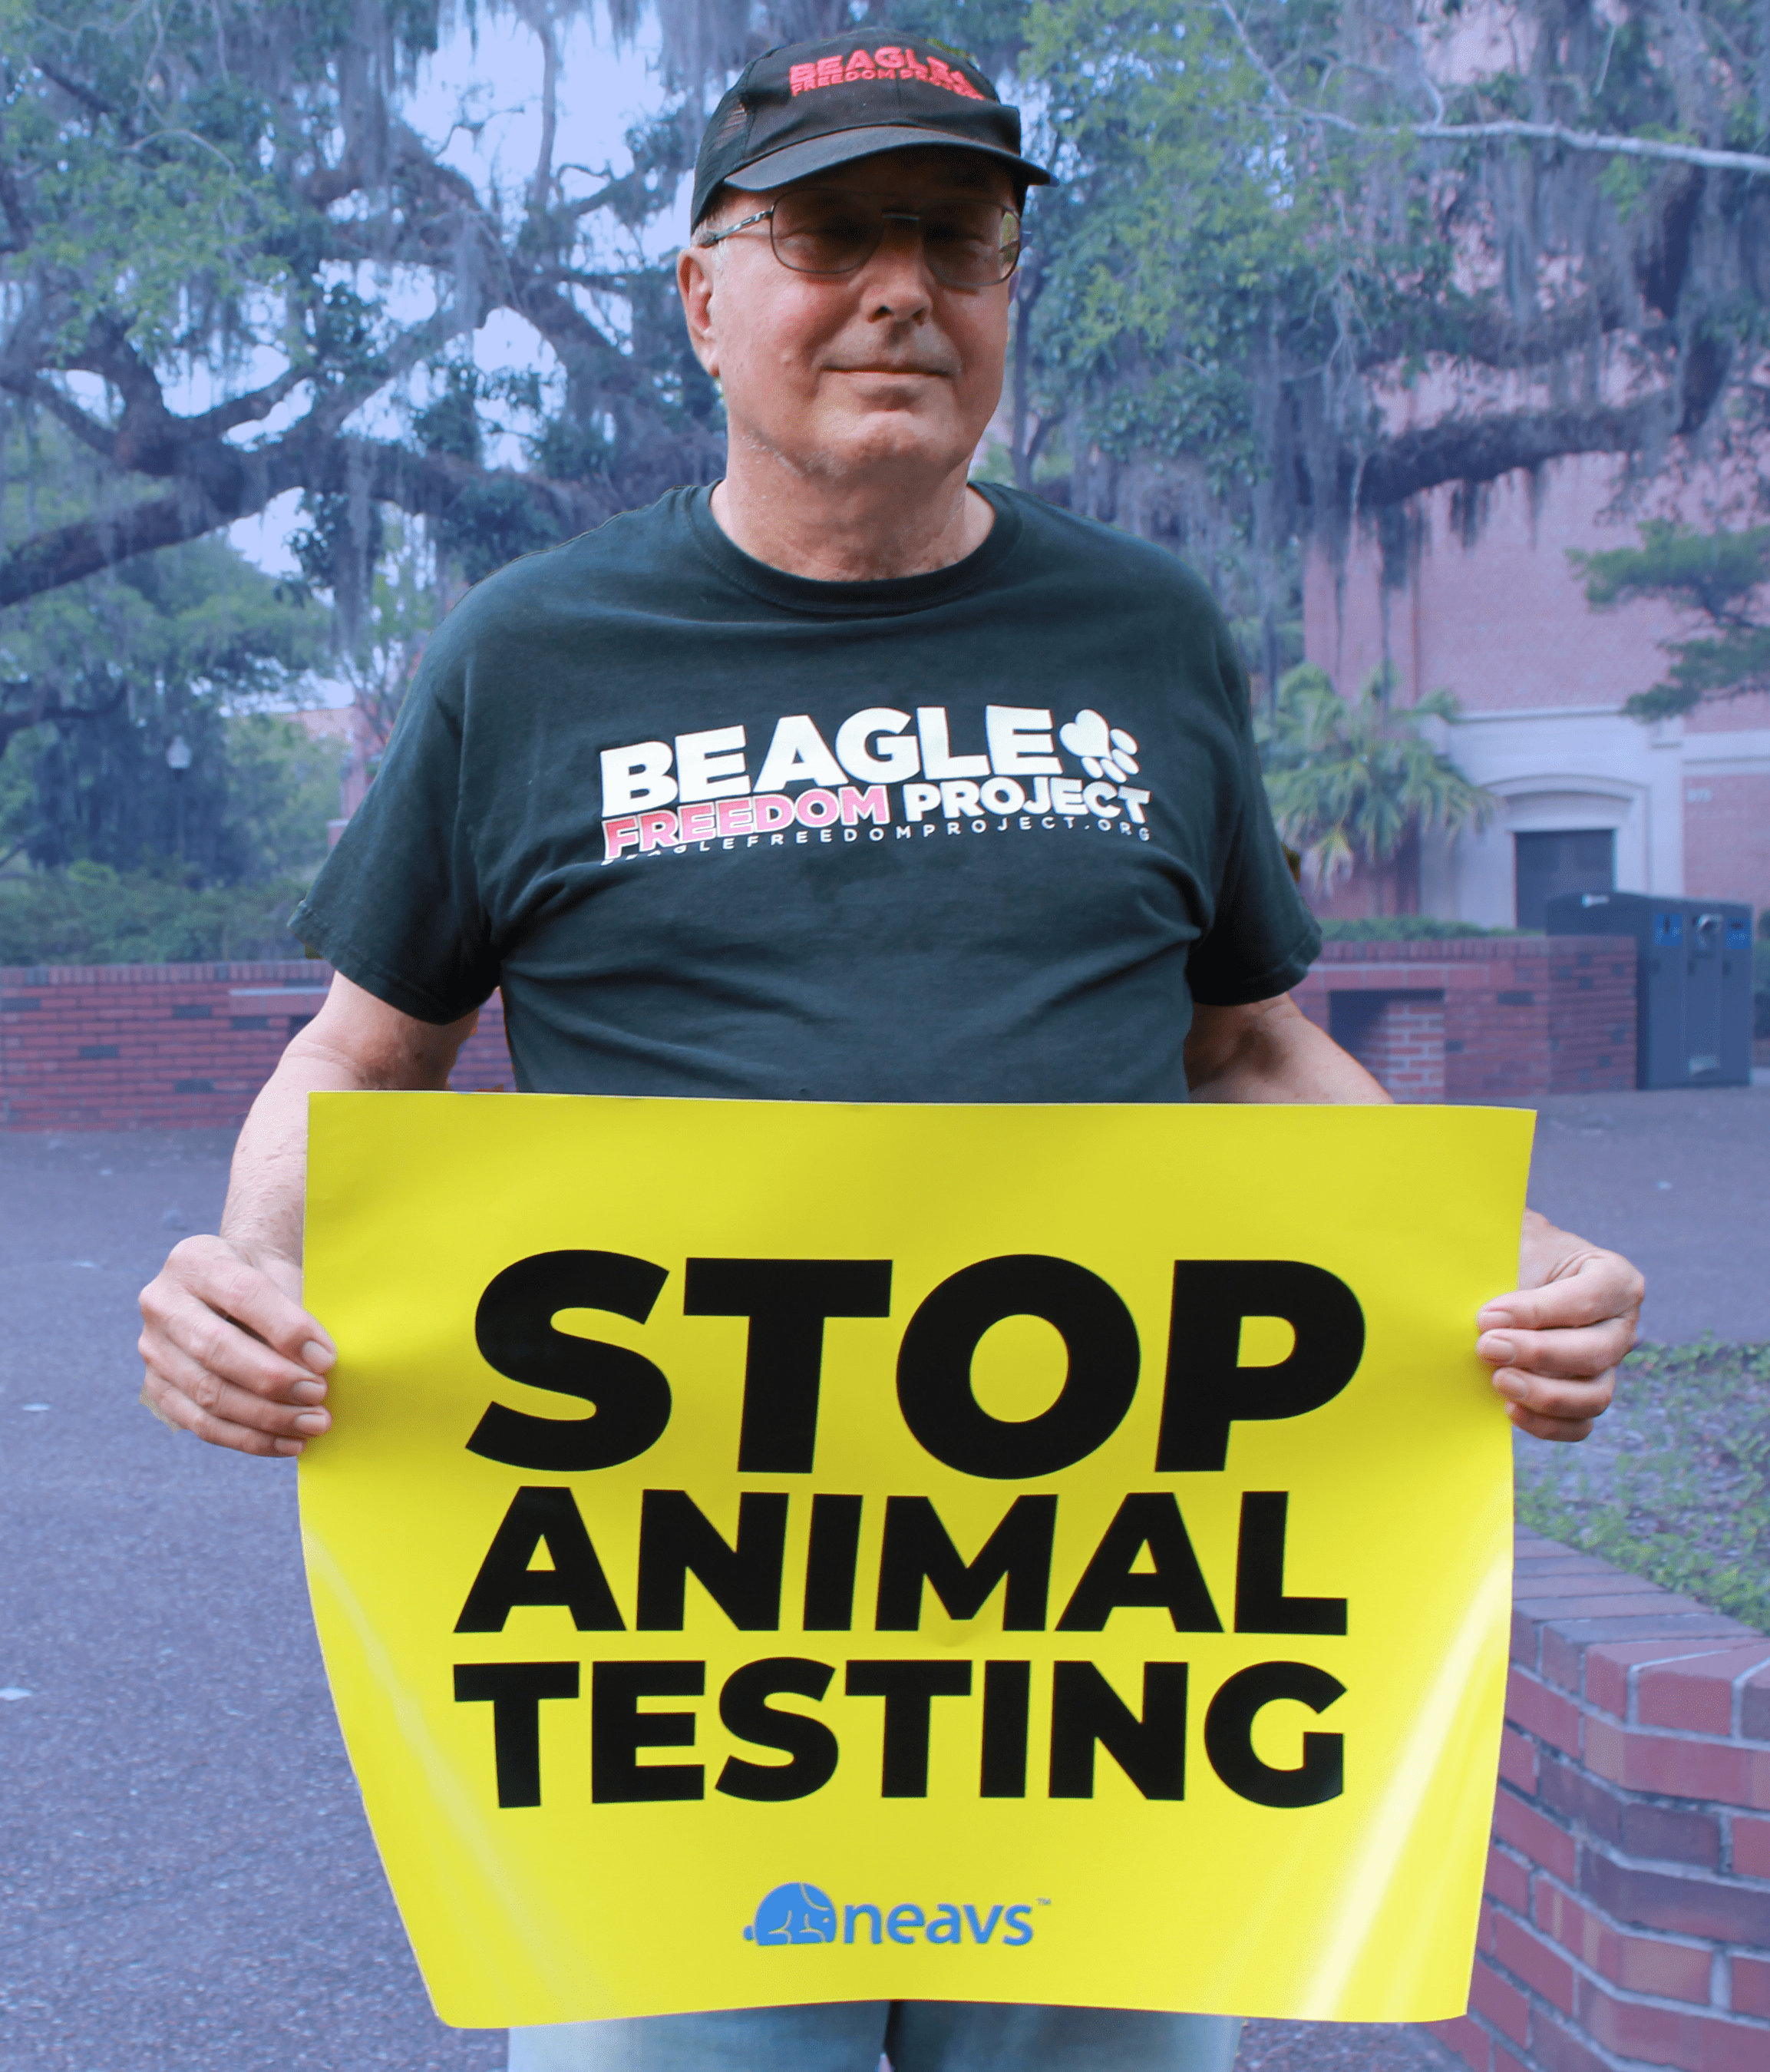 Bob began campaigning against animal cruelty about eight years ago.